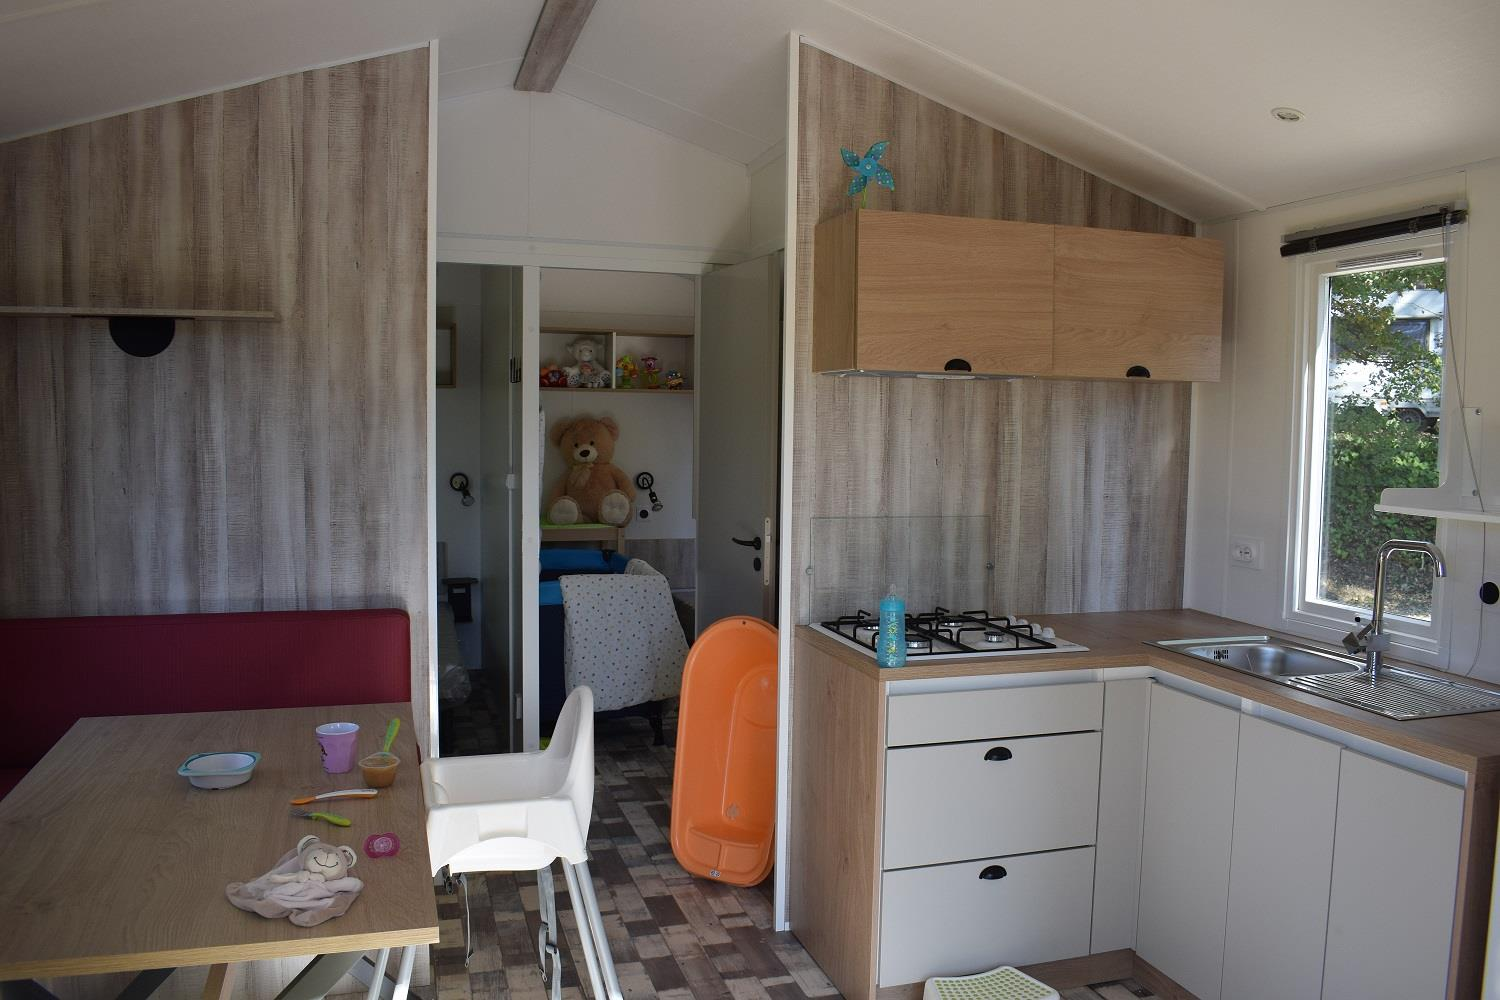 Accommodation - Mobil Home 2 Rooms 24M² Baby Special, Air-Conditioning, Covered Terrace - Domaine la Garenne